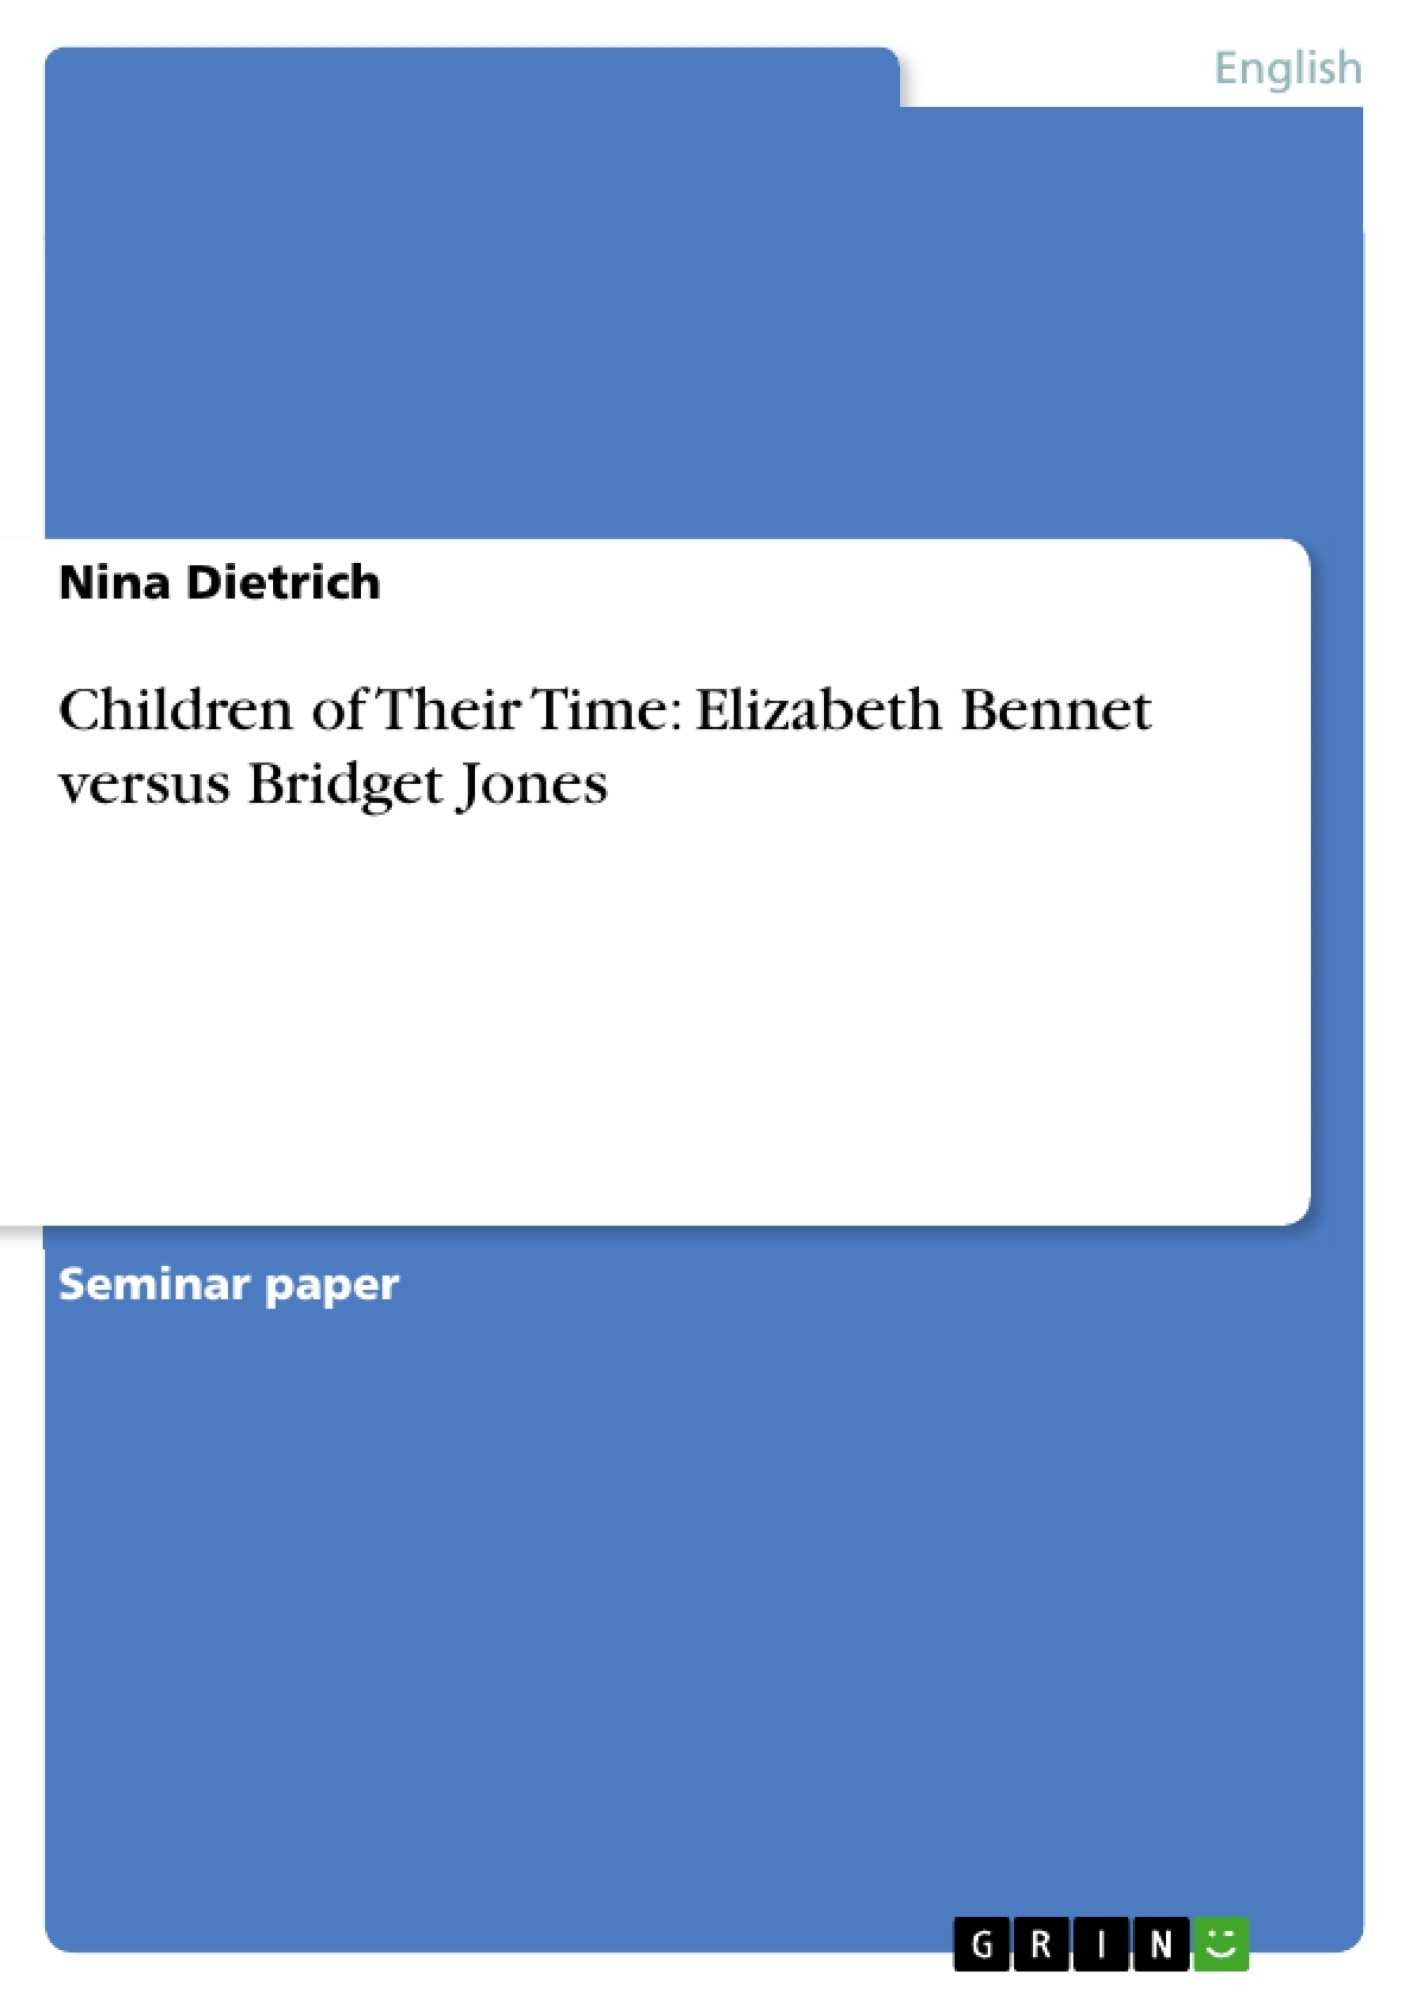 children of their time elizabeth bennet versus bridget jones  children of their time elizabeth bennet versus bridget jones publish your master s thesis bachelor s thesis essay or term paper